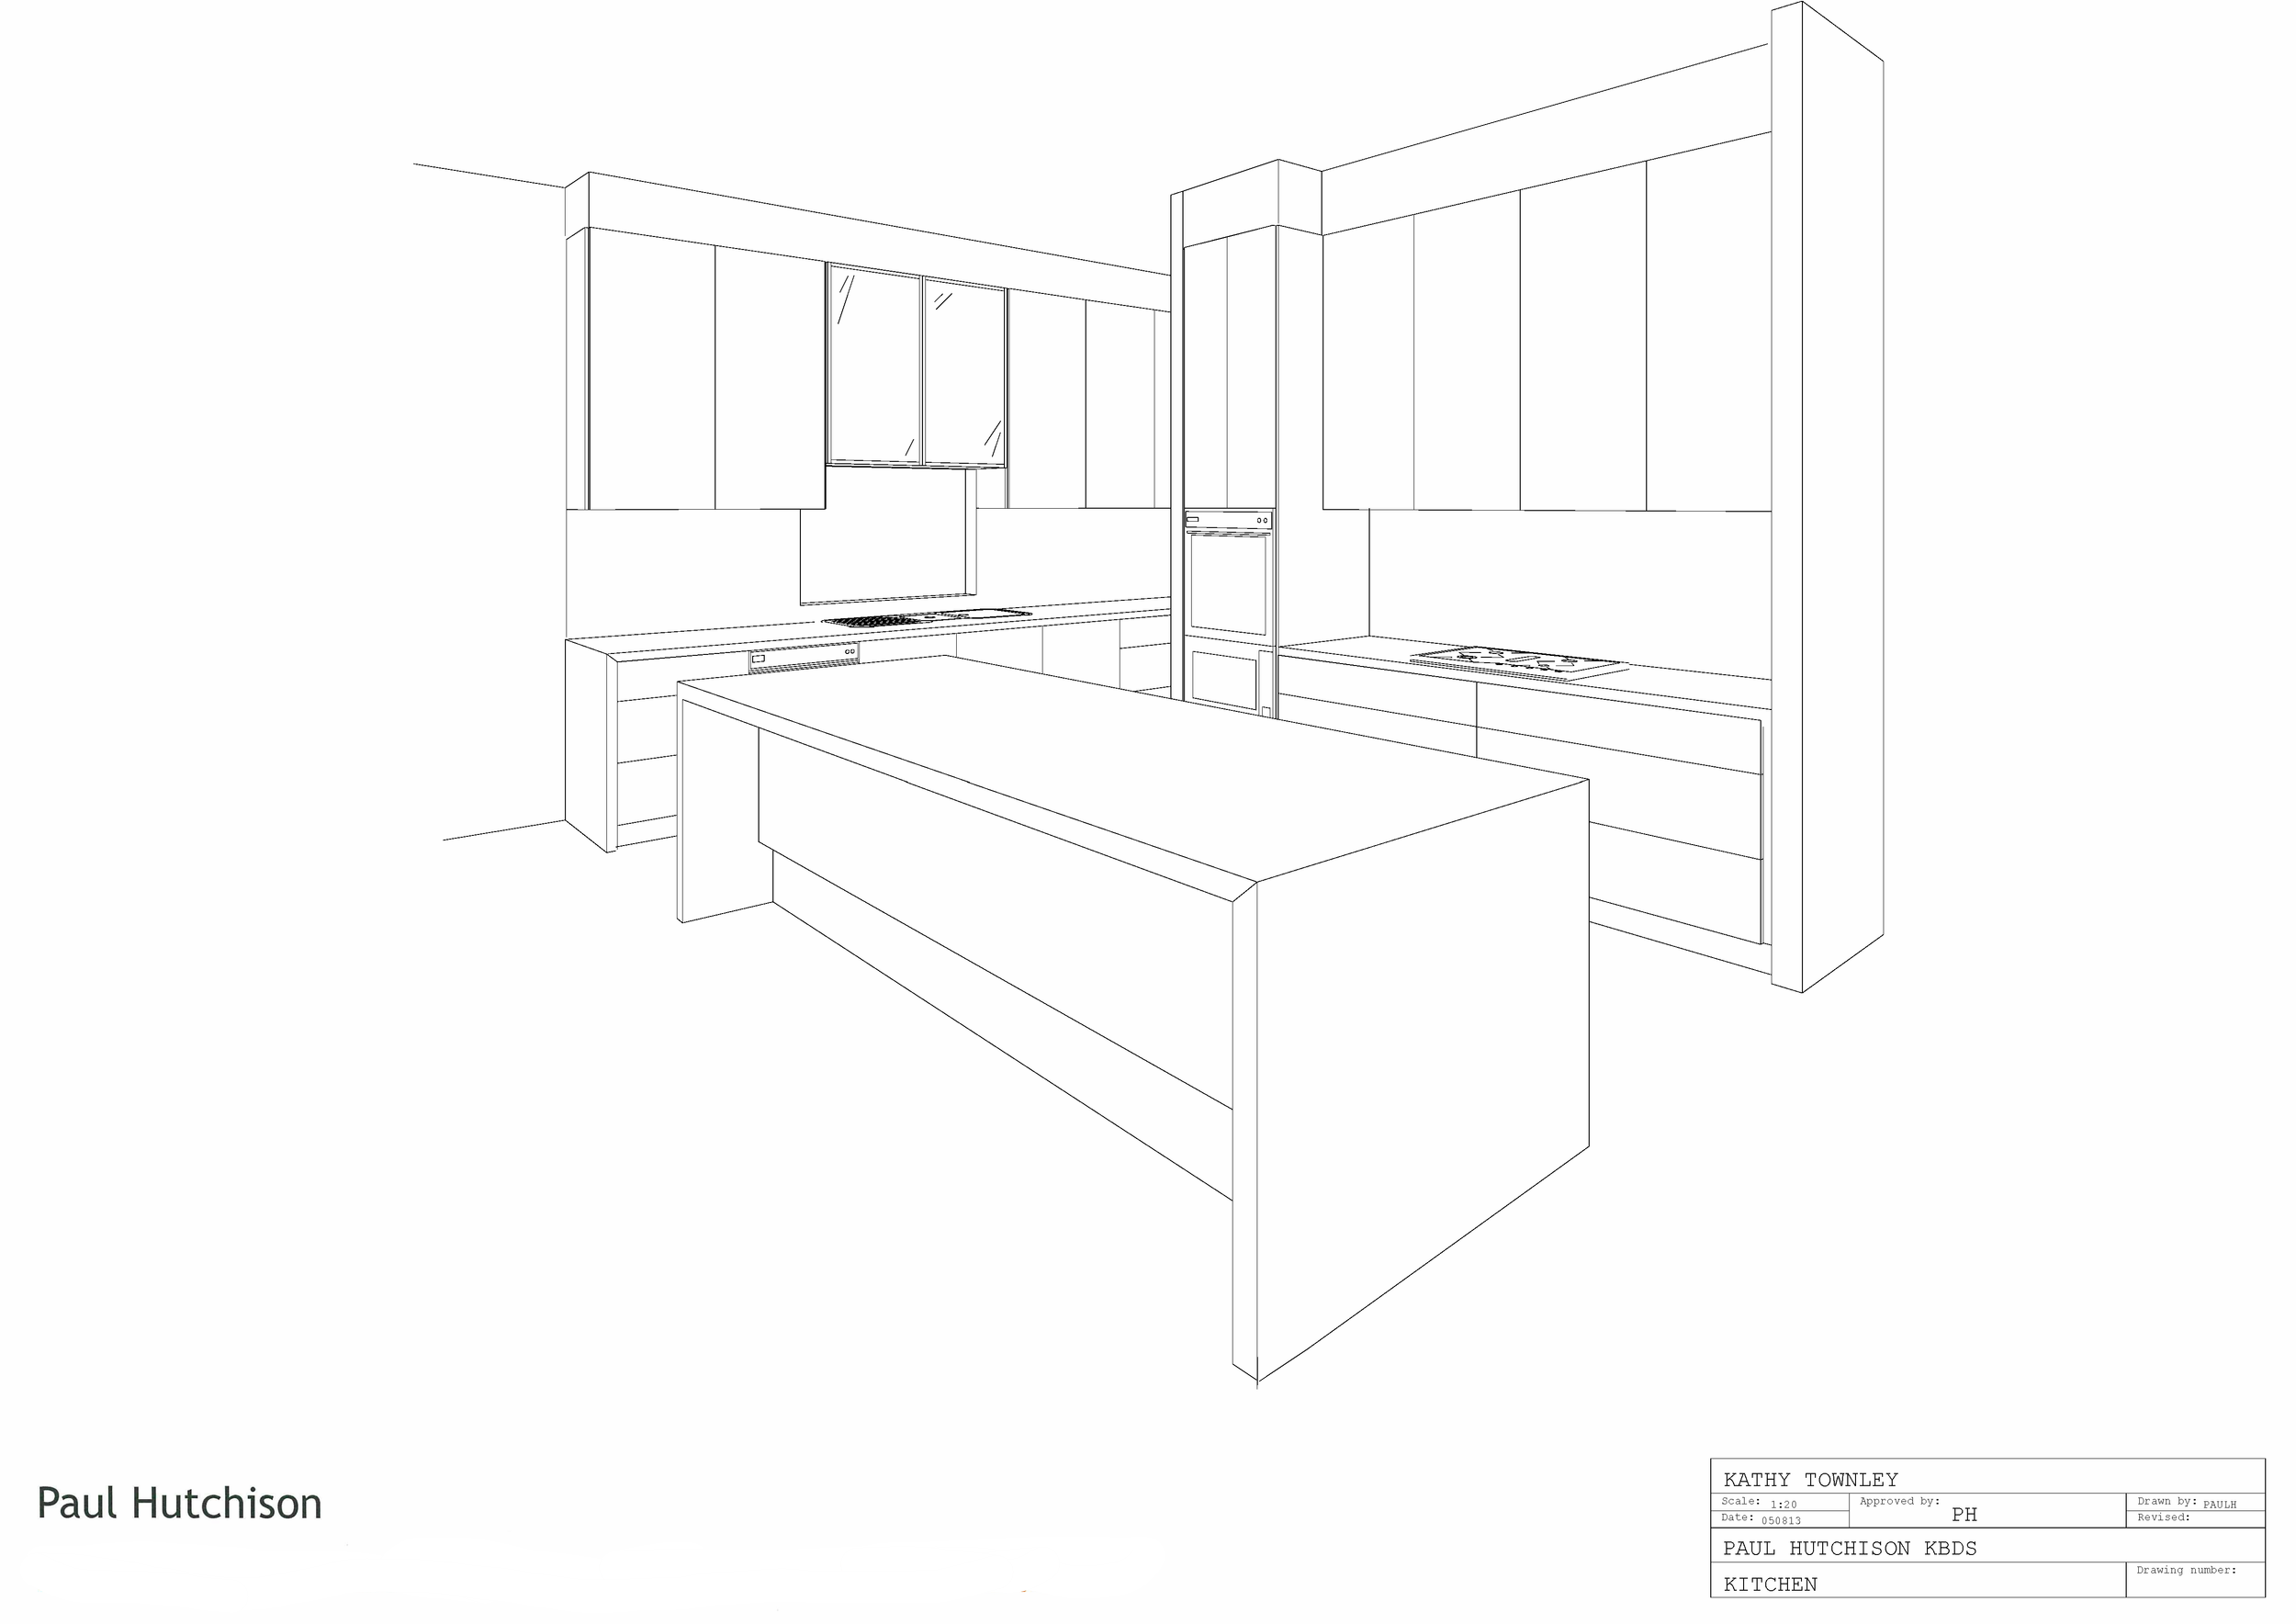 Second concept kitchen black & white 3D image